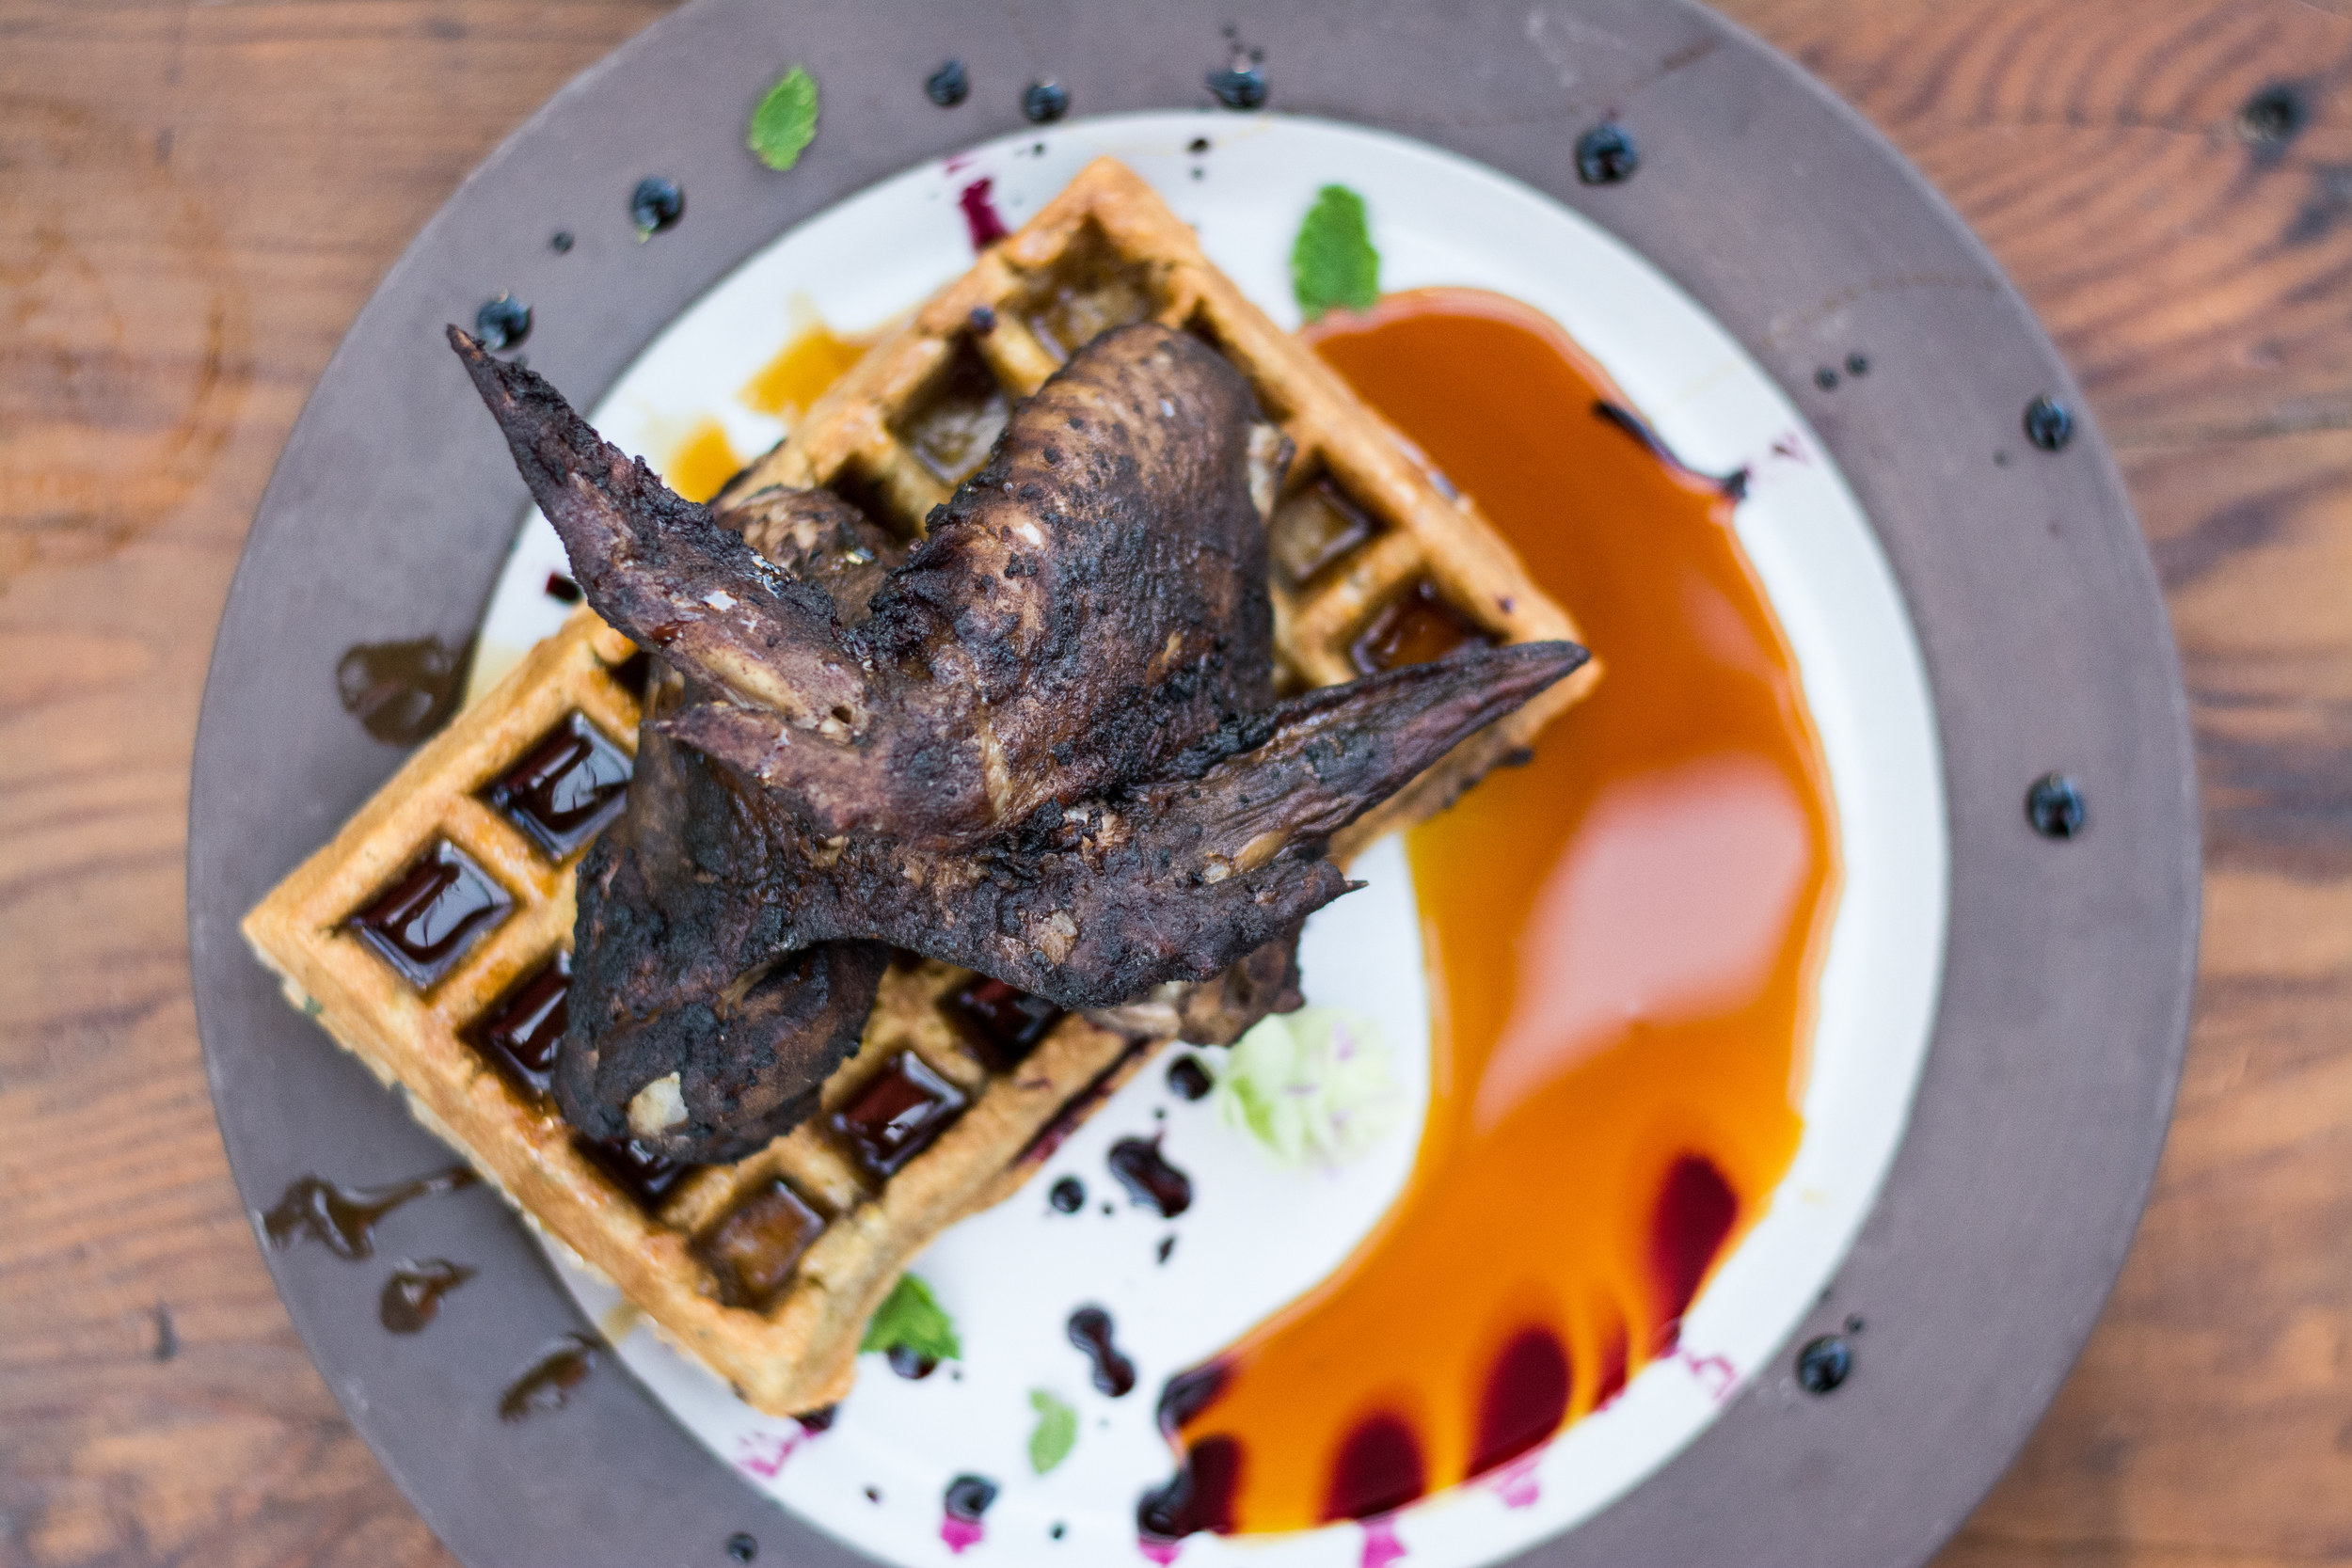 CHICKEN + WAFFLES    Chicken Wings, Herbs, Cassava Flour, Arrowroot, Butter, Chicken Bone Broth, Lemon, Egg, Coconut Sugar, Baking Soda, Salt) blueberry reduction, maguey sap, coconut syrup, coconut butter, olive oil, cinnamon